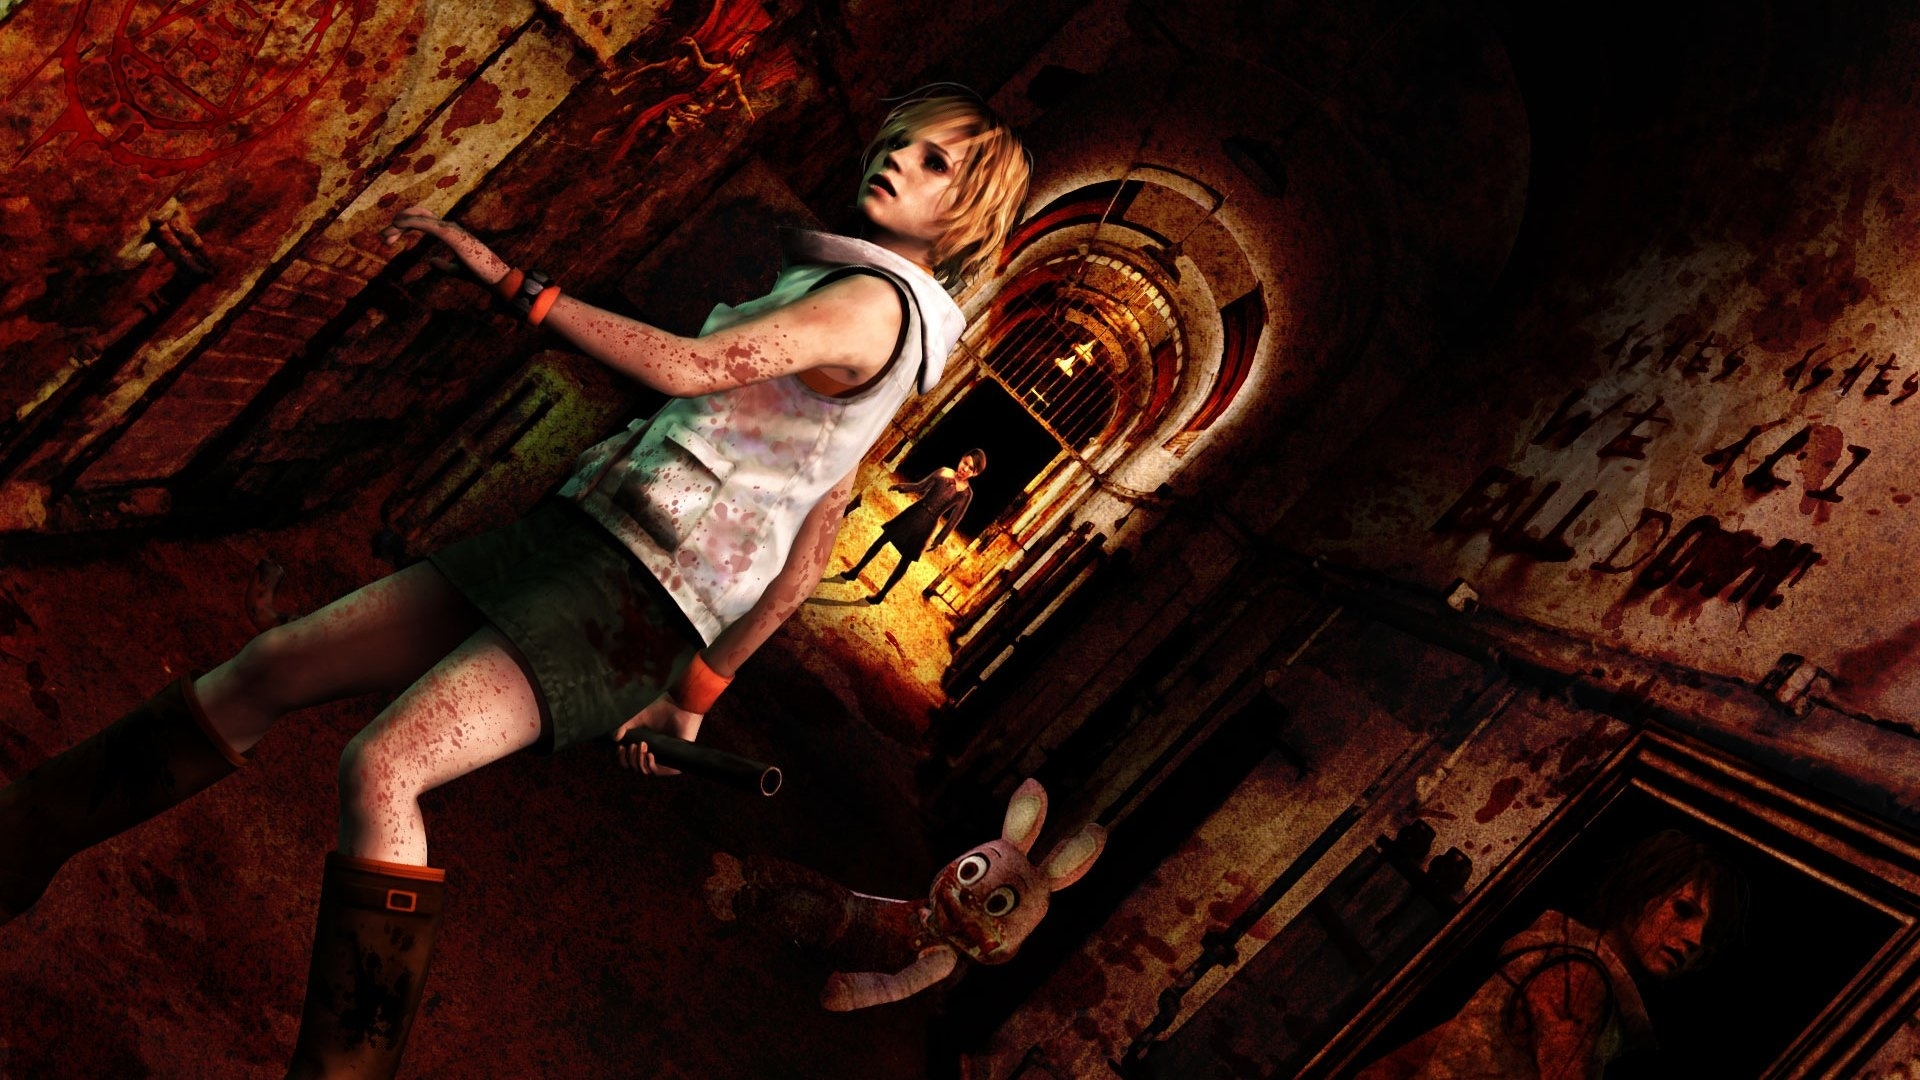 9 silent hill 3 hd wallpapers | background images - wallpaper abyss